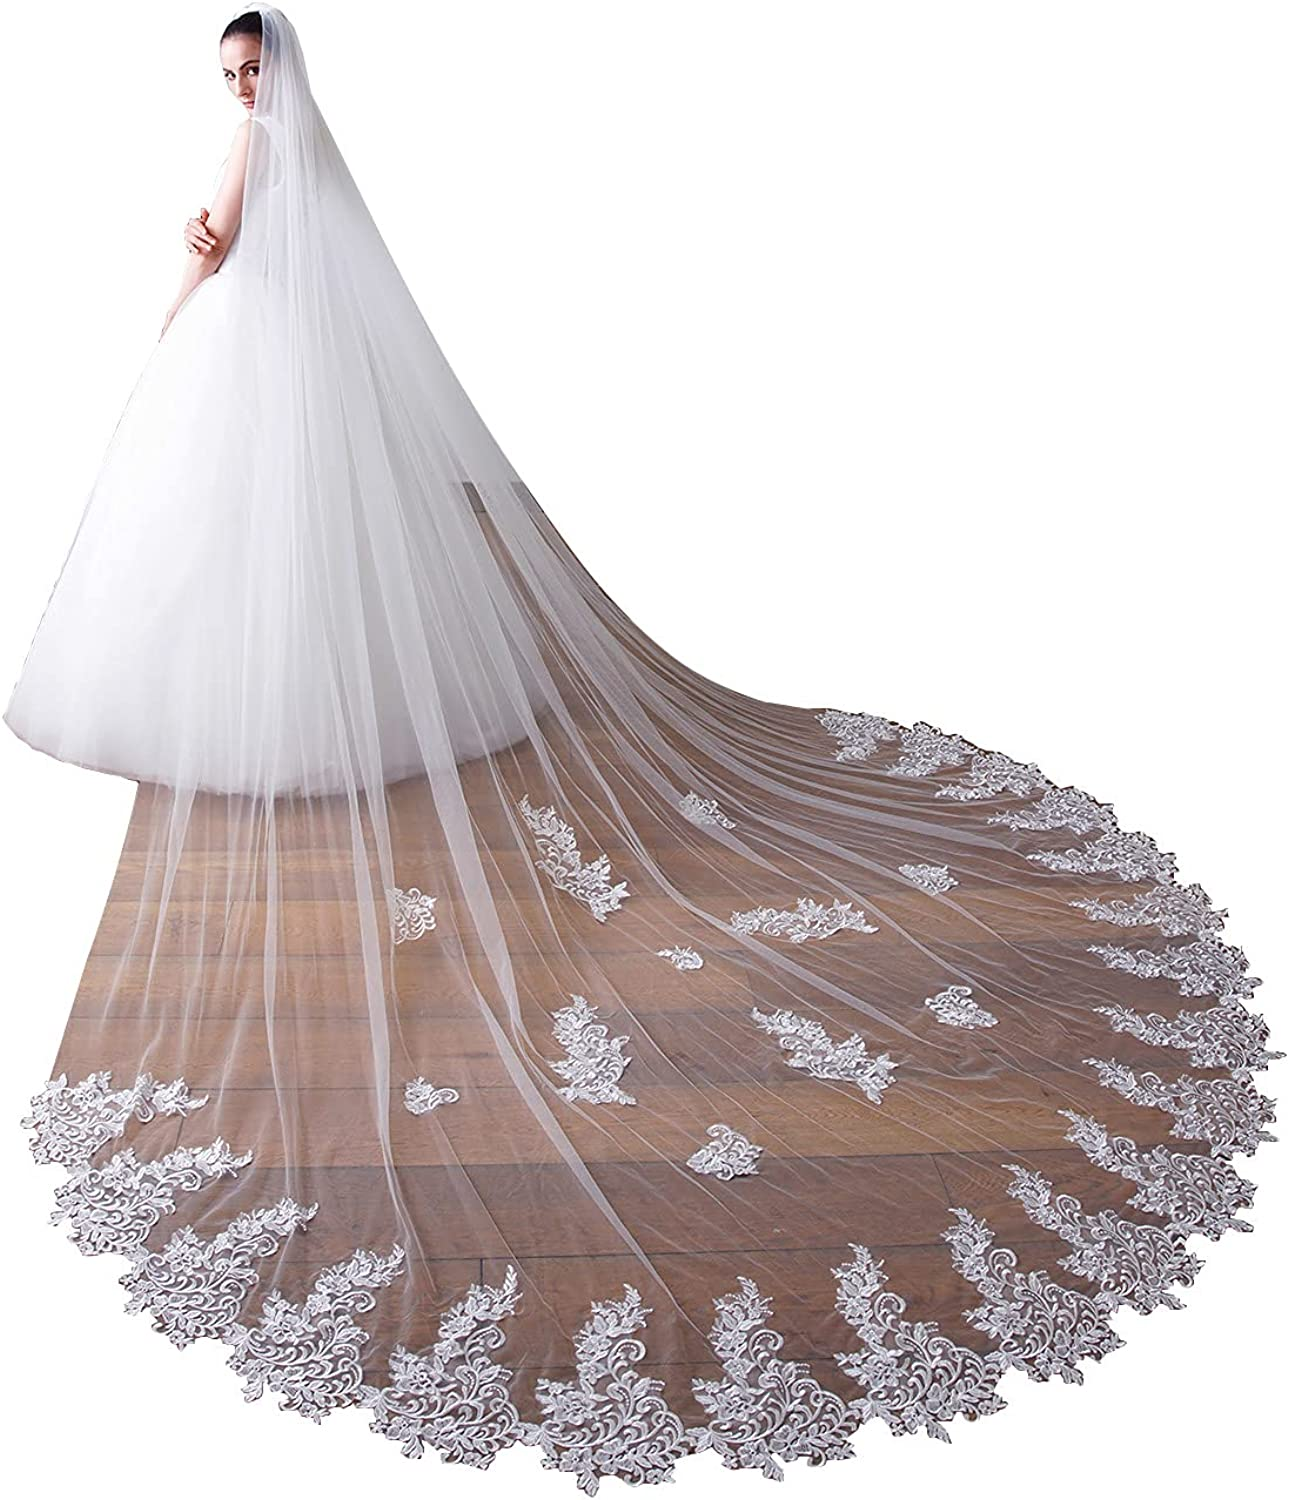 EllieHouse Womens 1 Tier Cathedral Lace Wedding Bridal Veil With Metal Comb X49